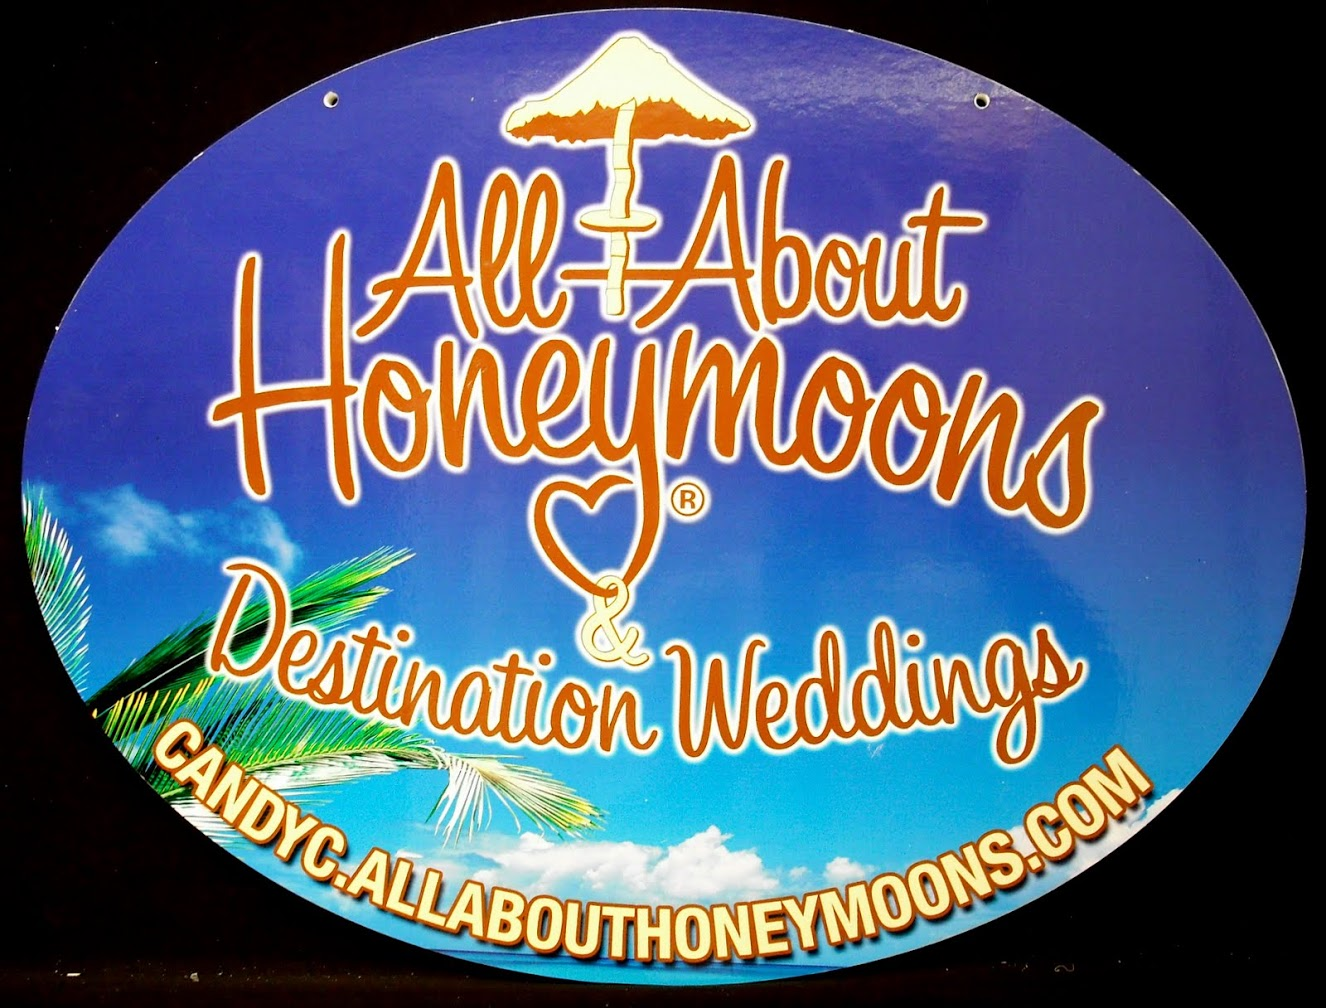 Honeymoon Destinations sign made out of PVC plastic